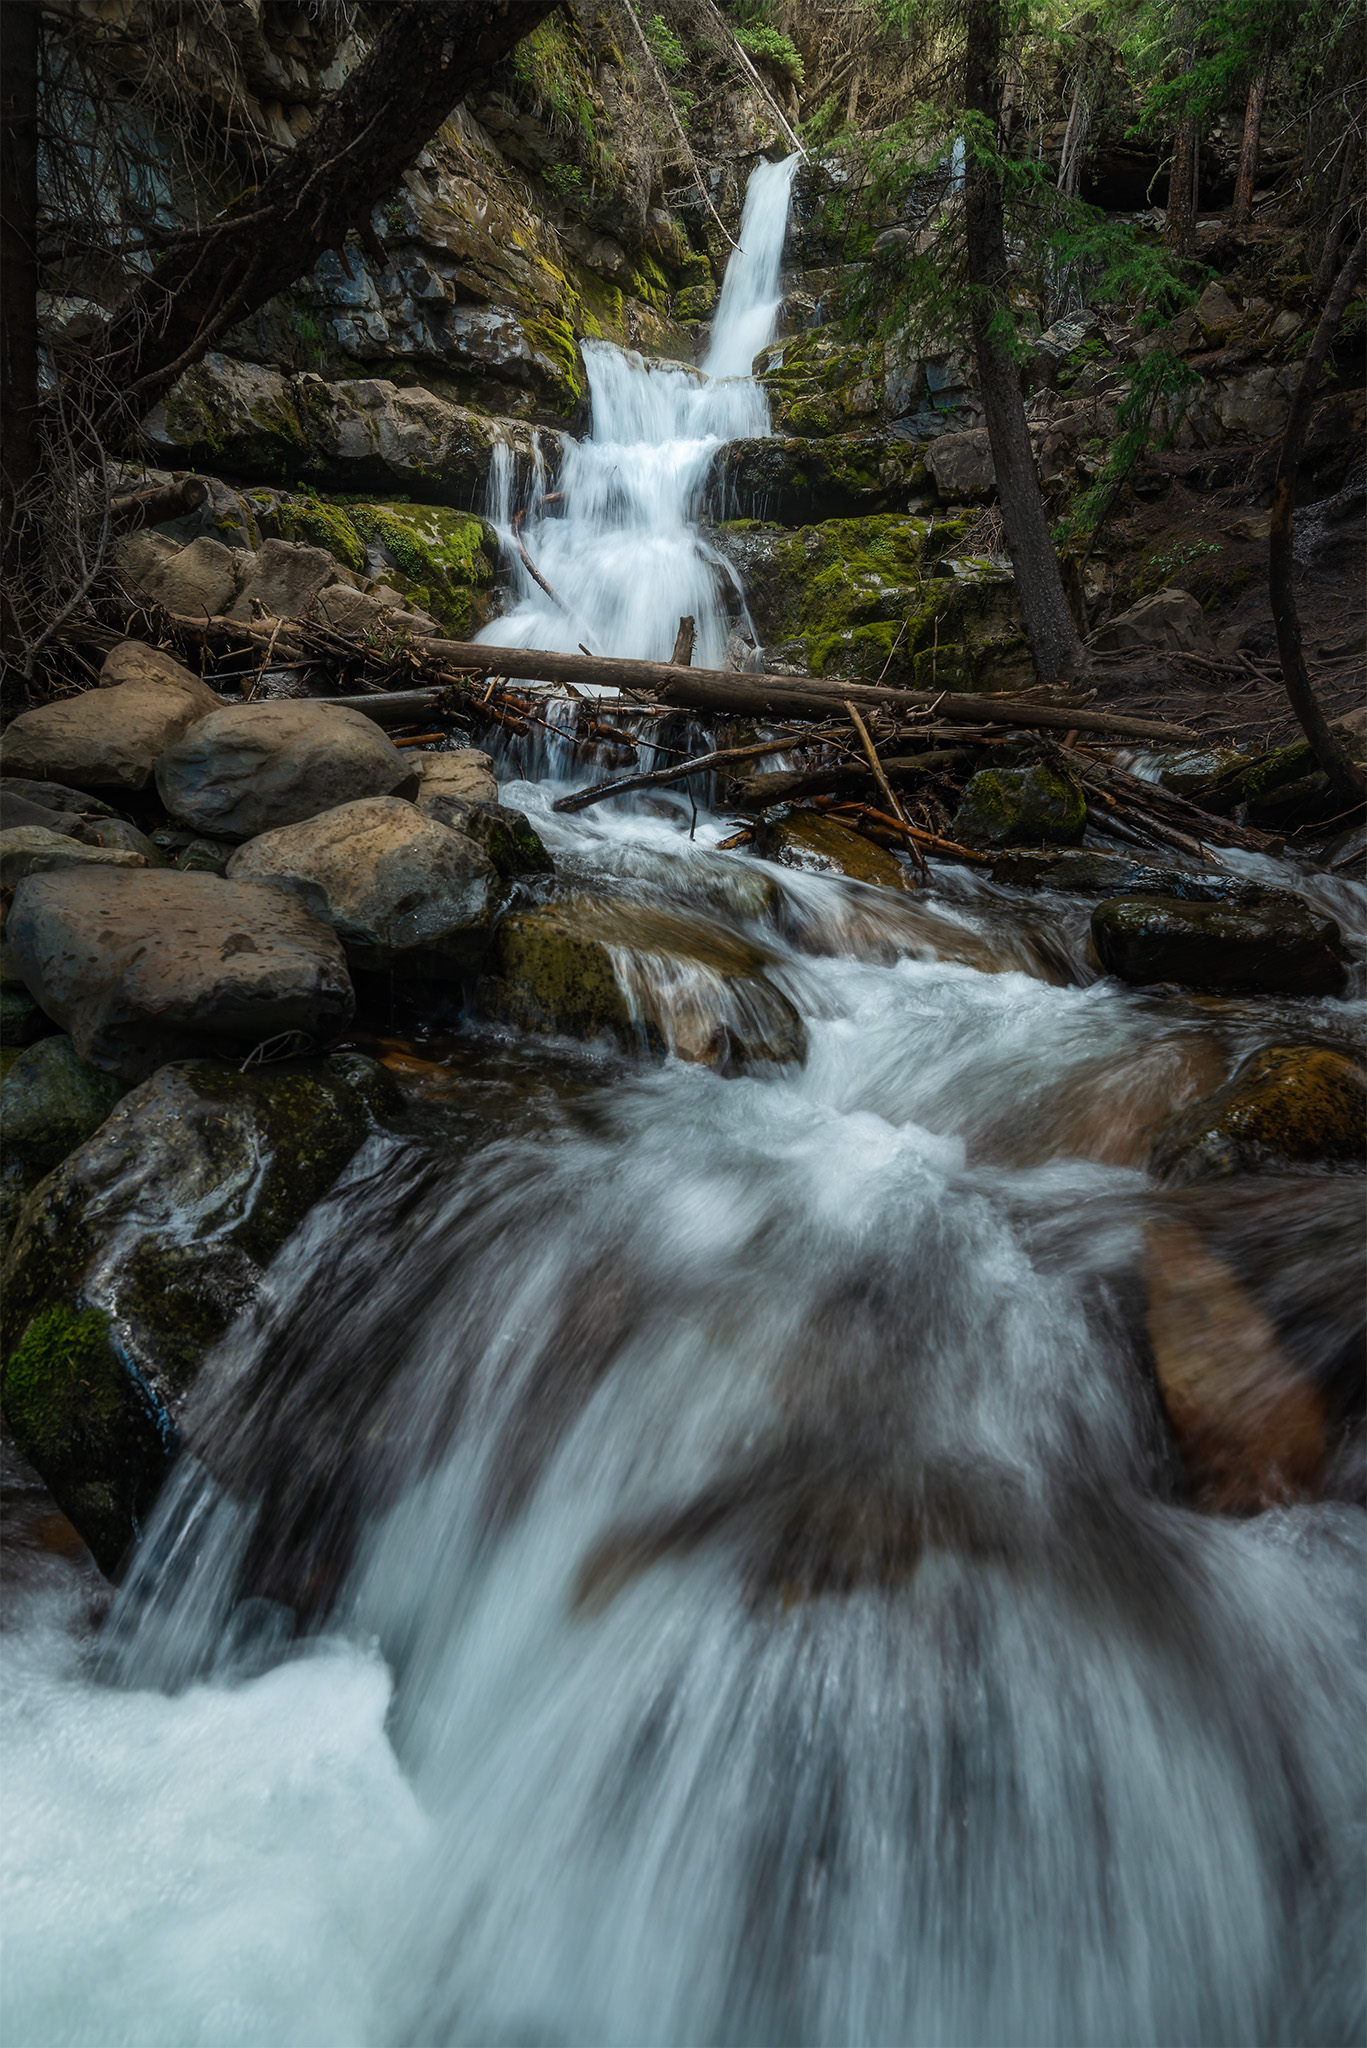 A nature photograph of the popular Troll Falls in Kananaskis Country